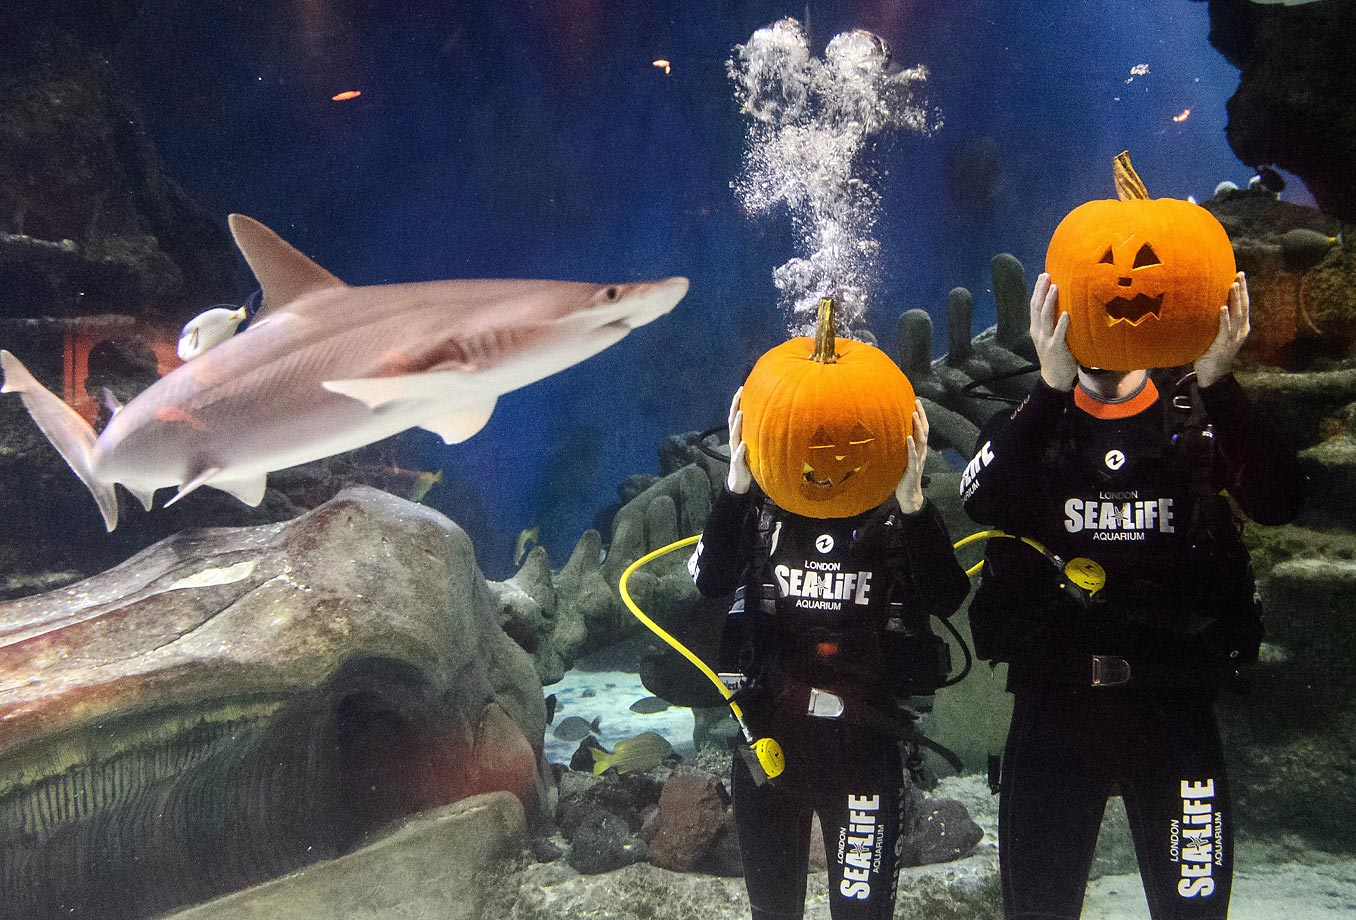 Divers hold their pumpkins after carving them in a fish tank at the London Aquarium.